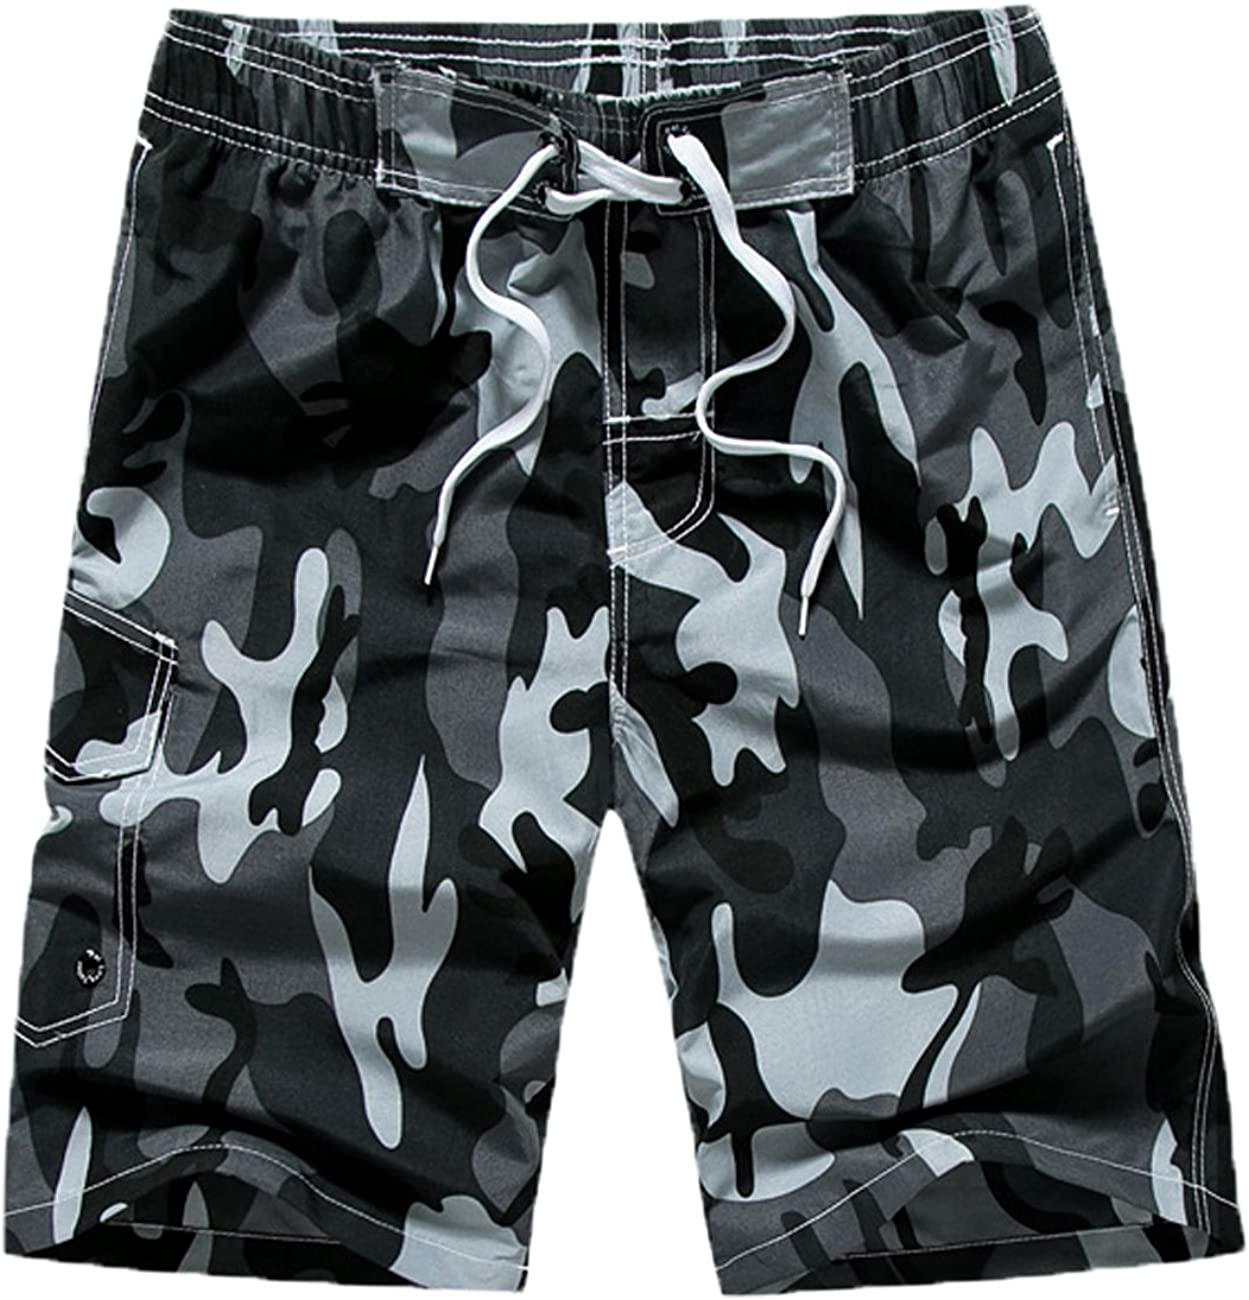 Benefeet Sox Mens Quick Dry Swim Trunks Beach Shorts Novelty Camou Swimwear with Mesh Lining Bathing Suits: Clothing